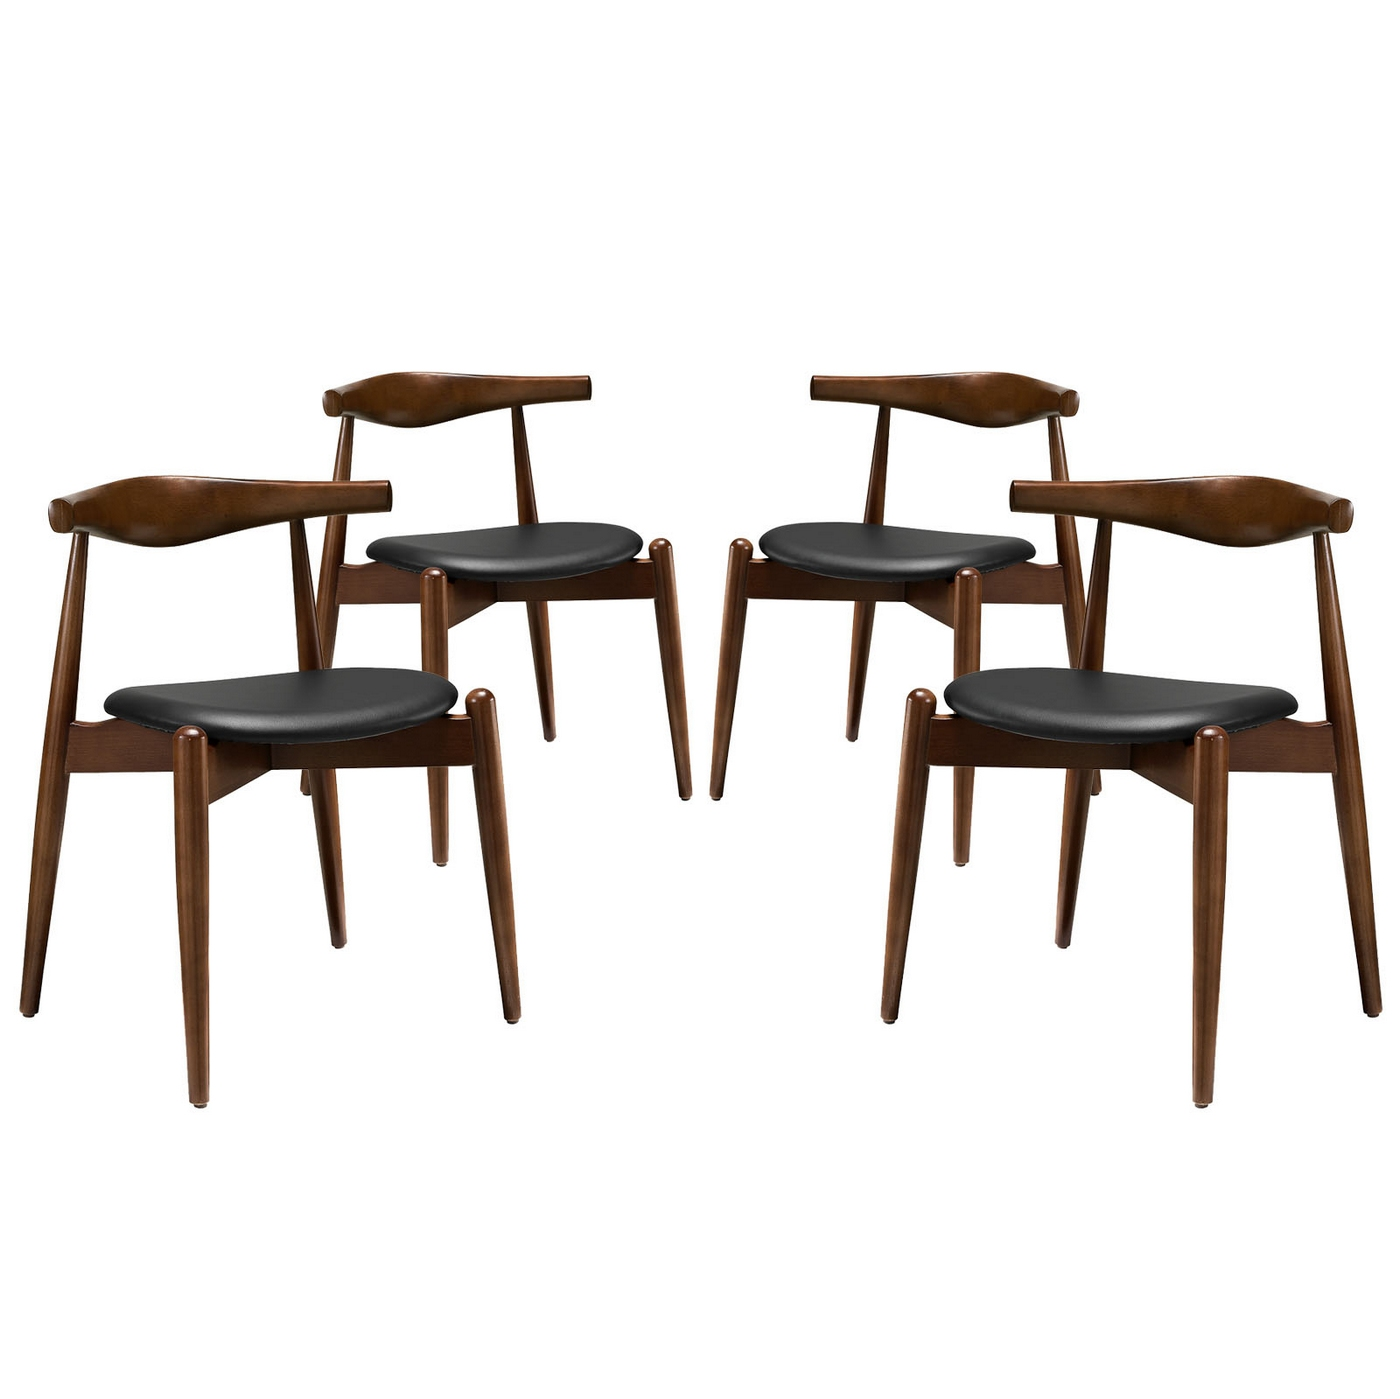 Marvelous photograph of  Wood Dining Side Chairs w/ Upholstered Seats Dark Walnut Black with #623F28 color and 1400x1399 pixels